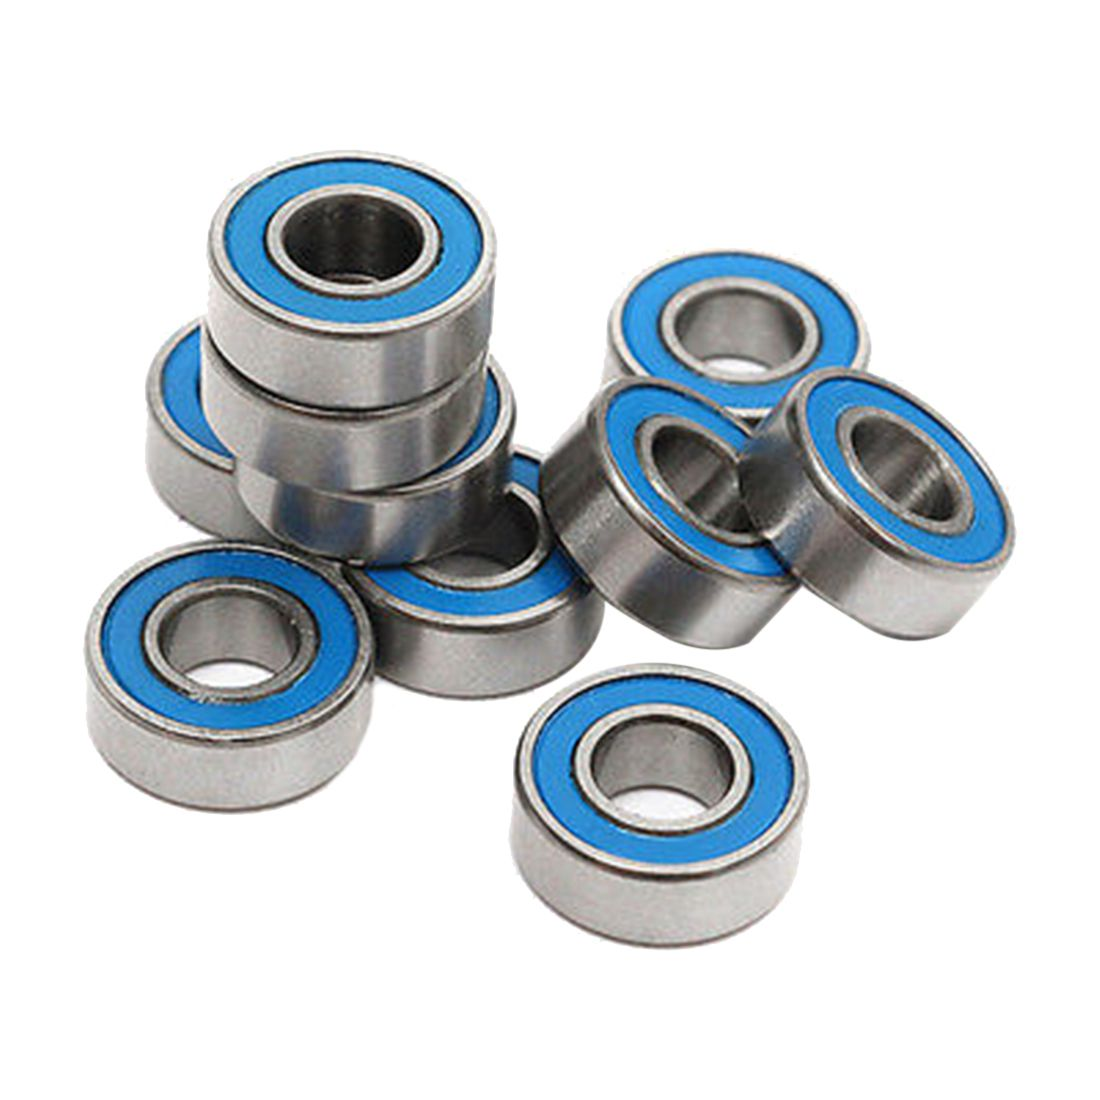 Good Deal-10Pcs MR115 2RS Ball Bearings 5x11x4mm For Traxxas Slash Rustler Stampede Wheel